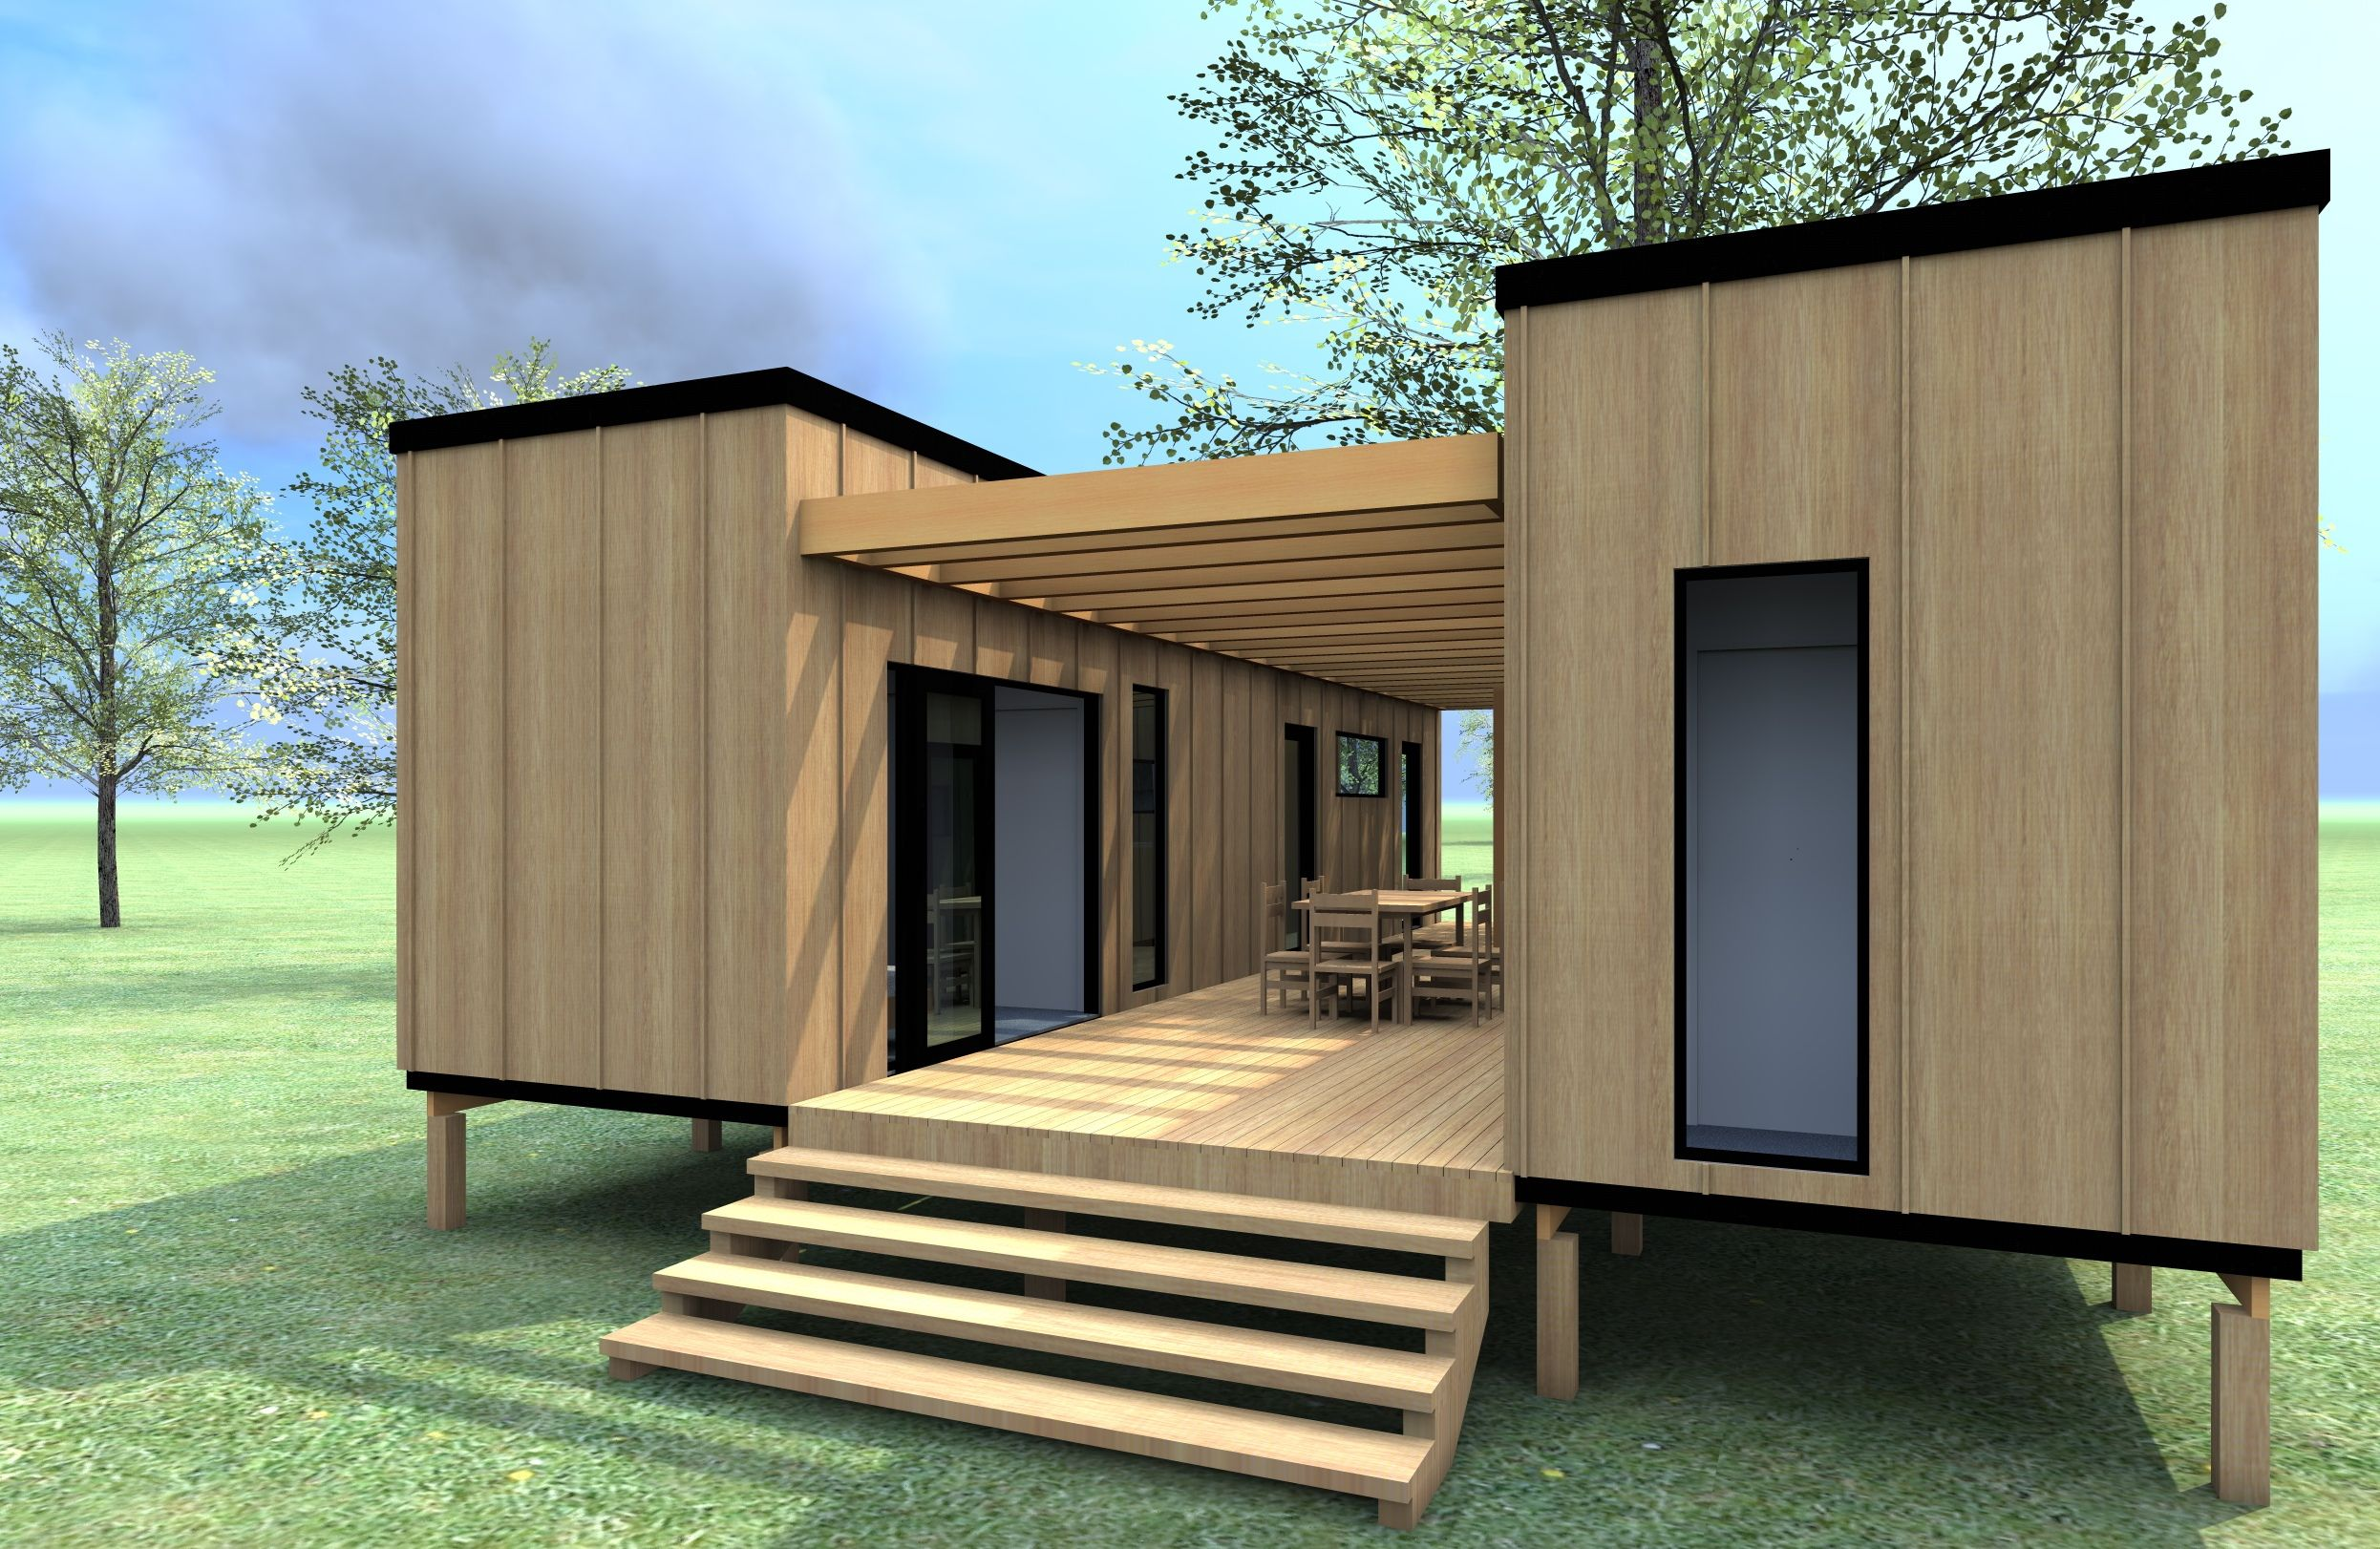 Small Shipping Container Homes trinidadcubular container buildings | tiny house living | tiny